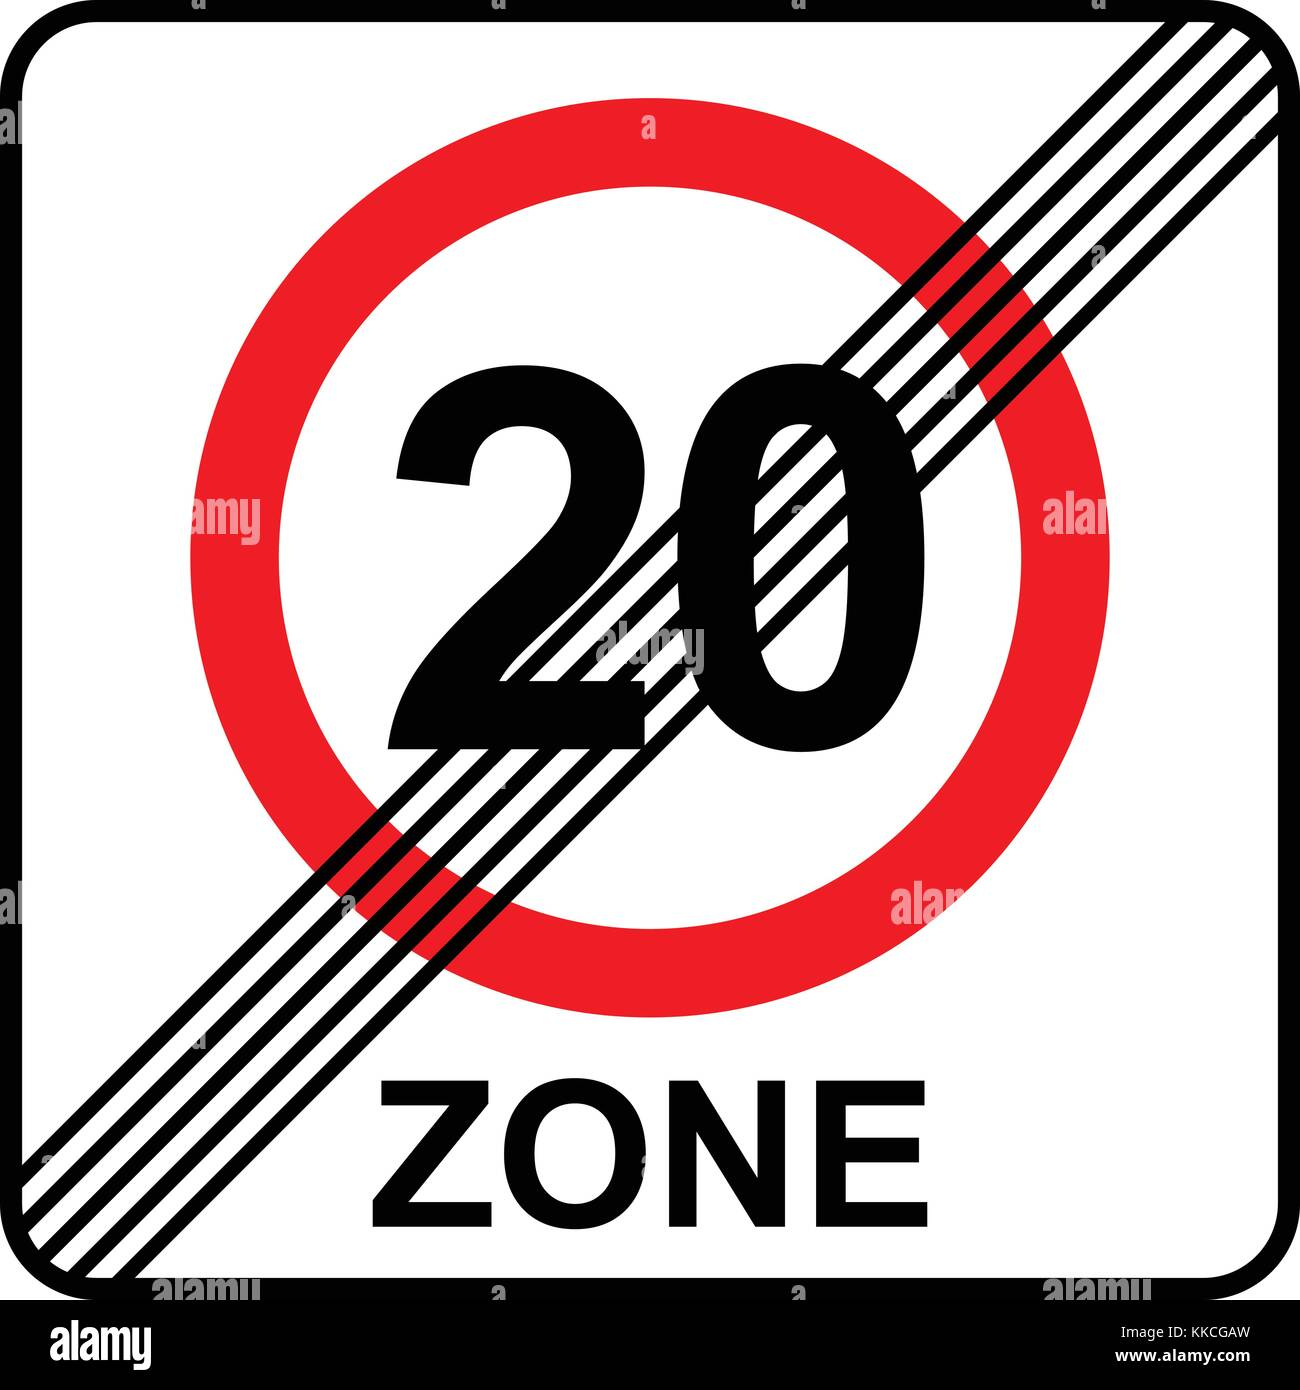 Speed limit 20 zone end sign, vector illustration. - Stock Vector